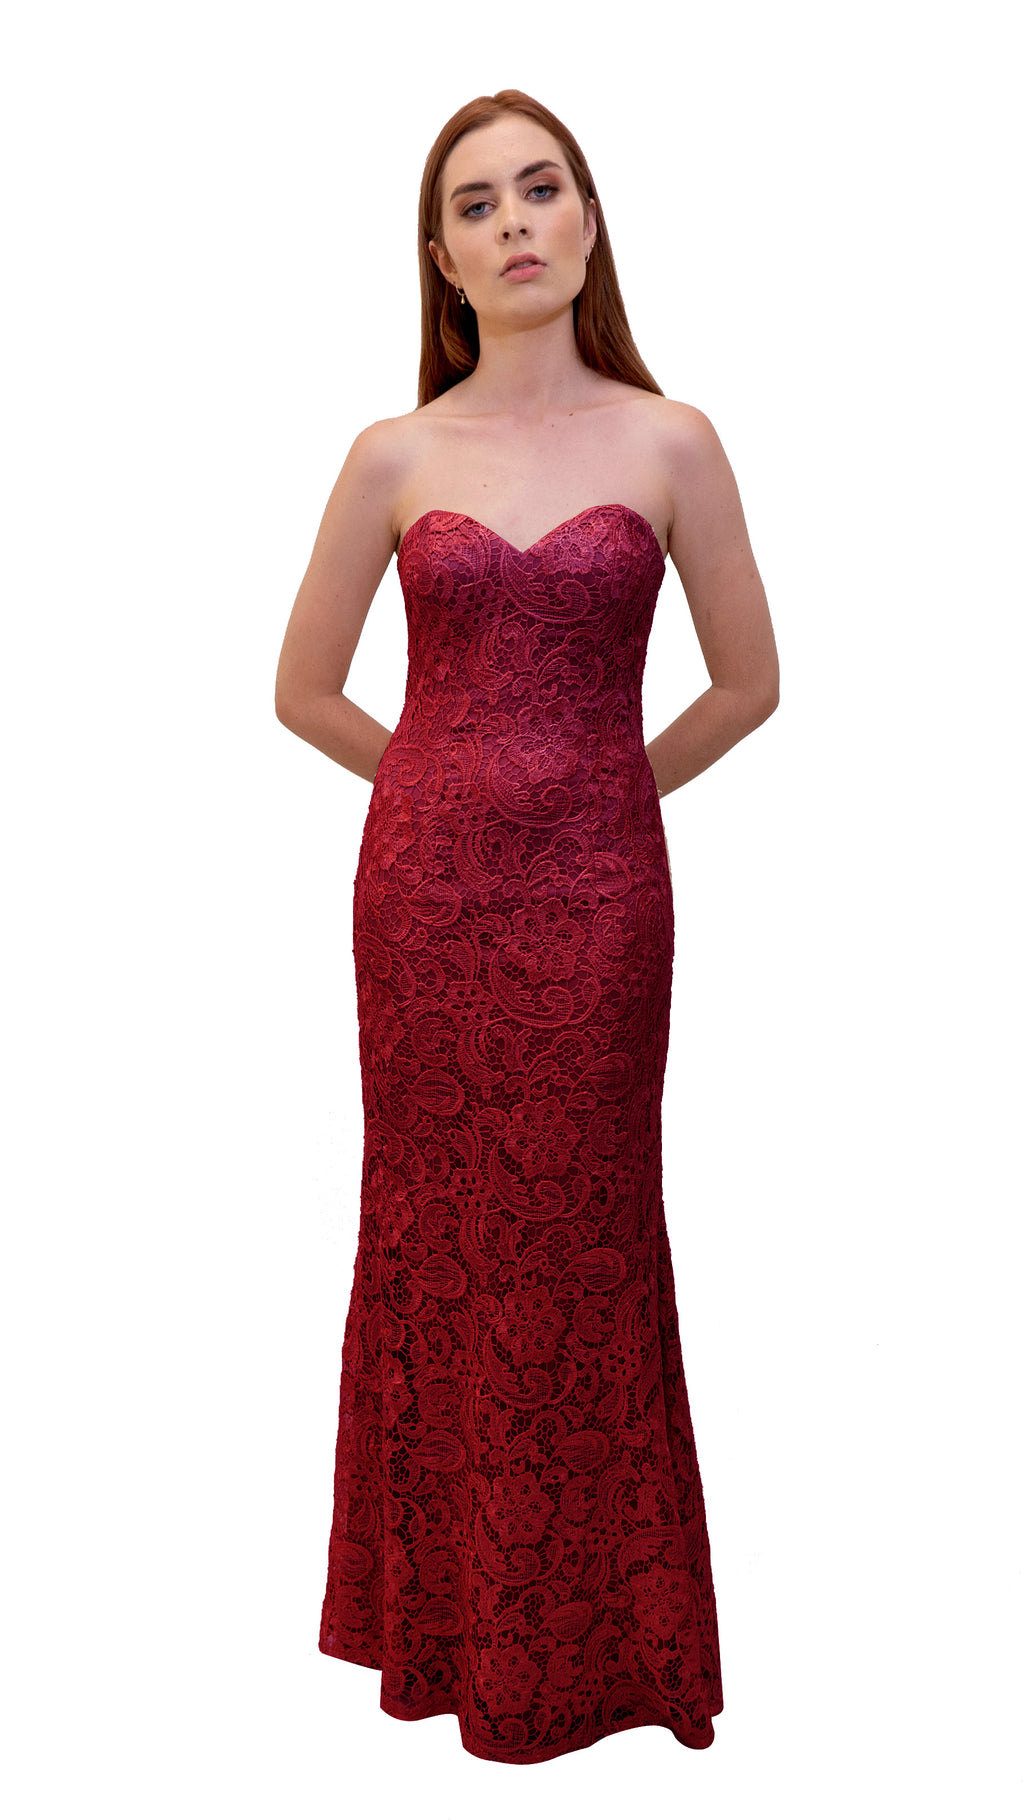 Bariano Strapless Lace Dress Dark Cherry